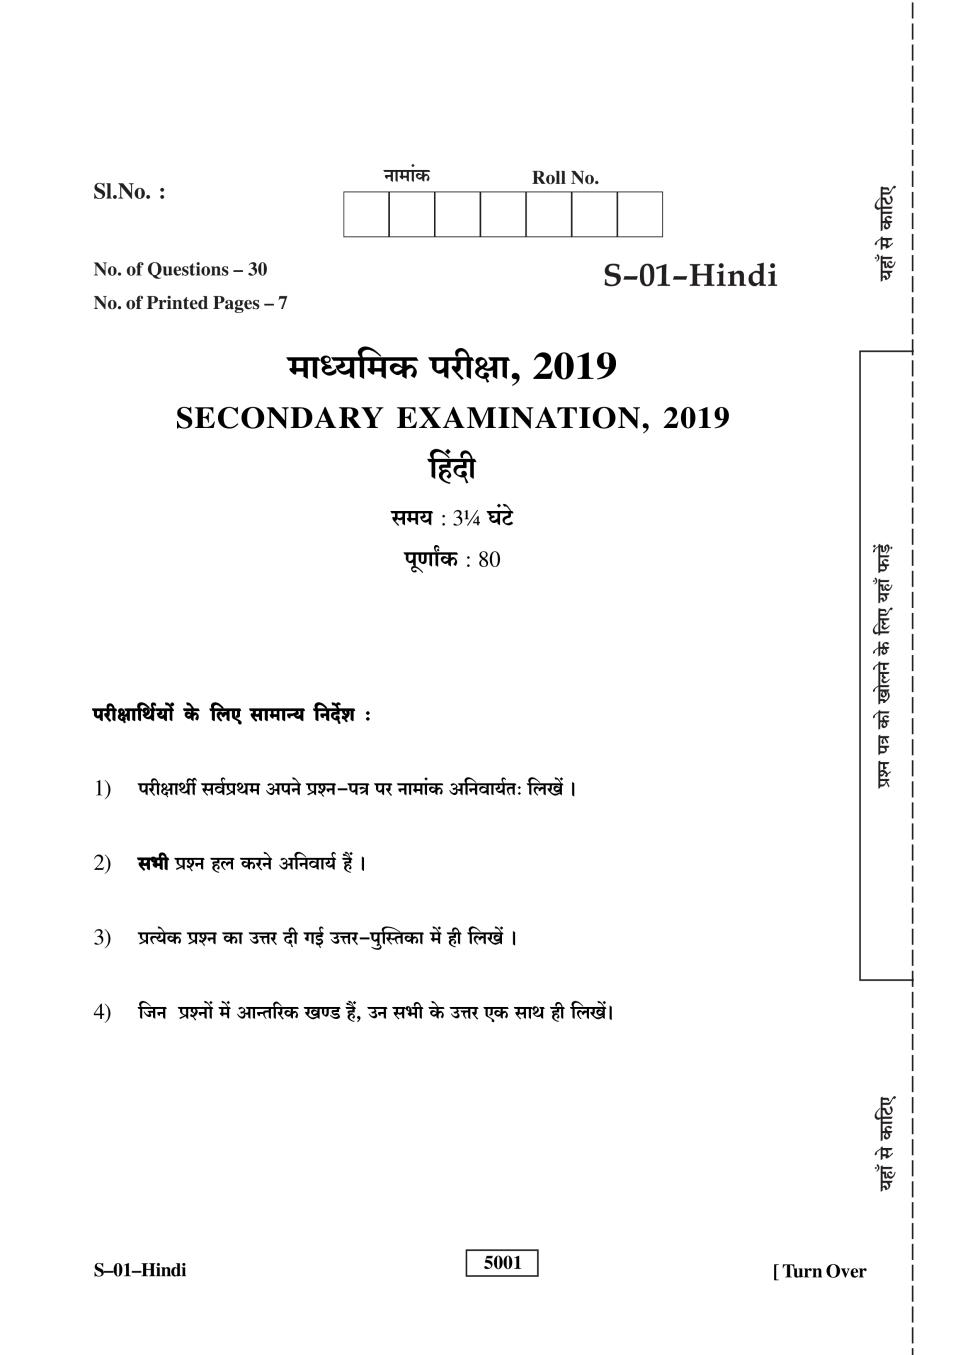 Rajasthan Board Secondary Hindi Question Paper